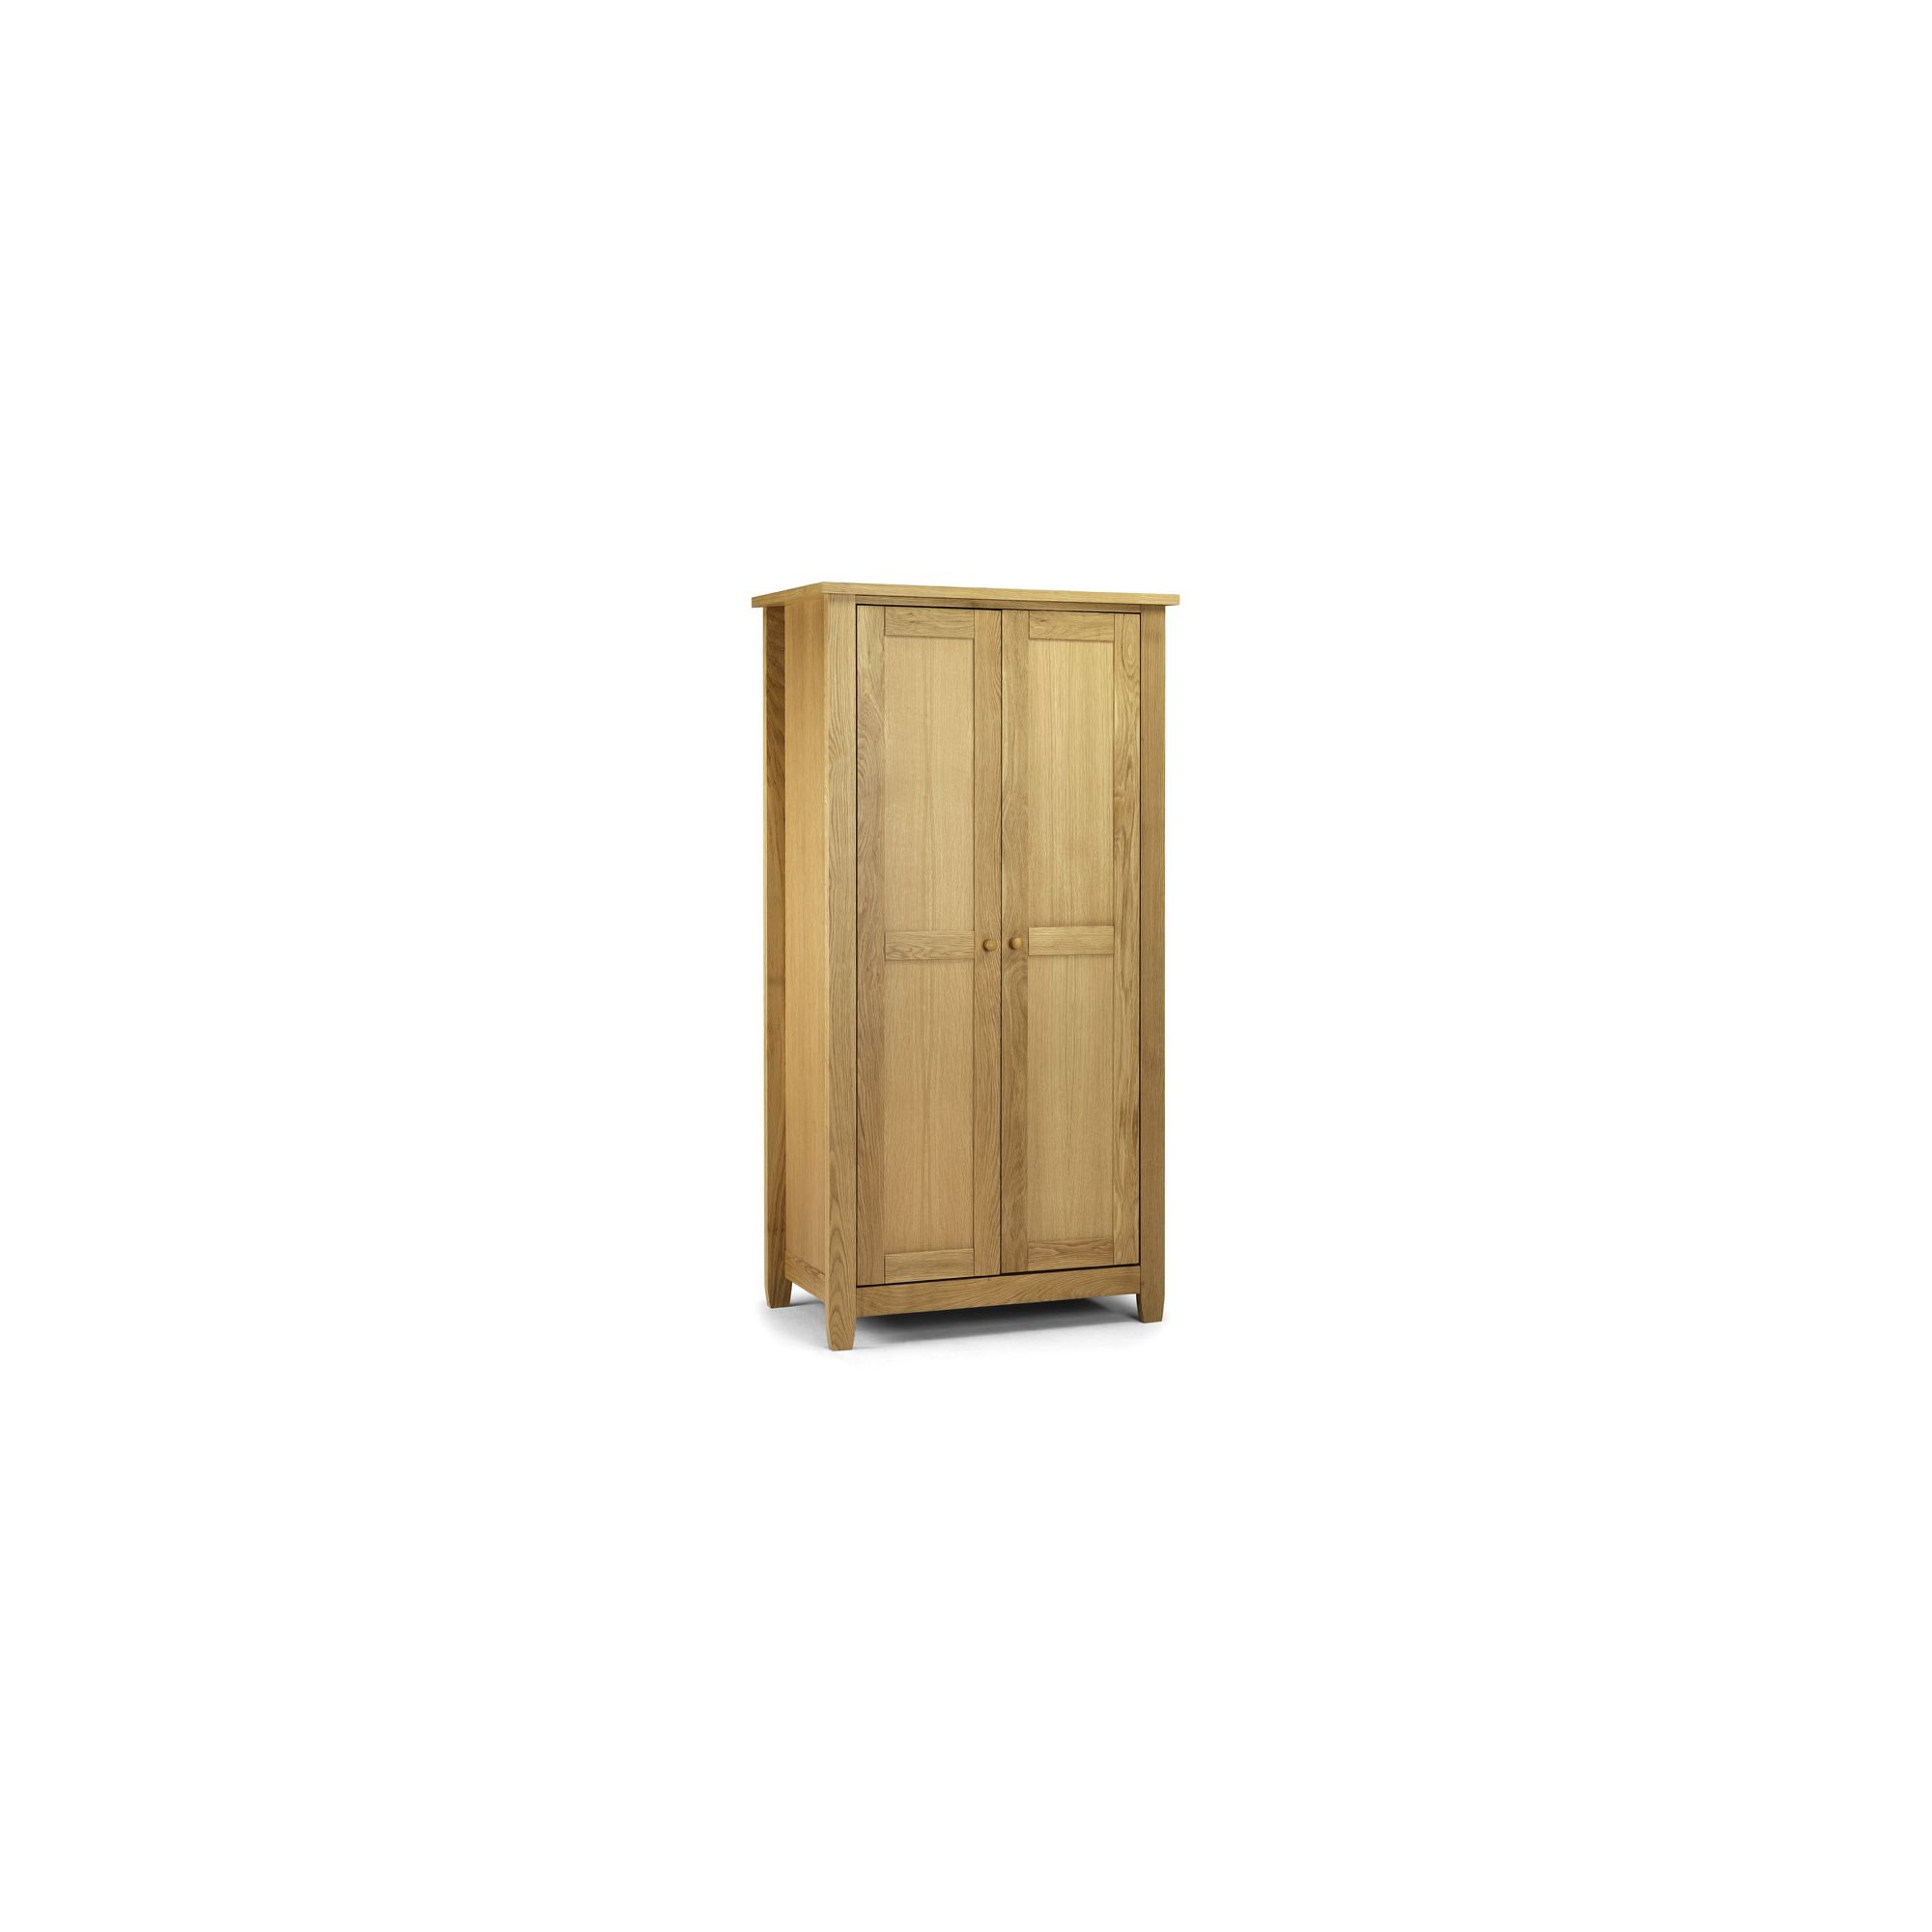 Julian Bowen Lyndhurst 2 Door Wardrobe in American White Oak at Tesco Direct